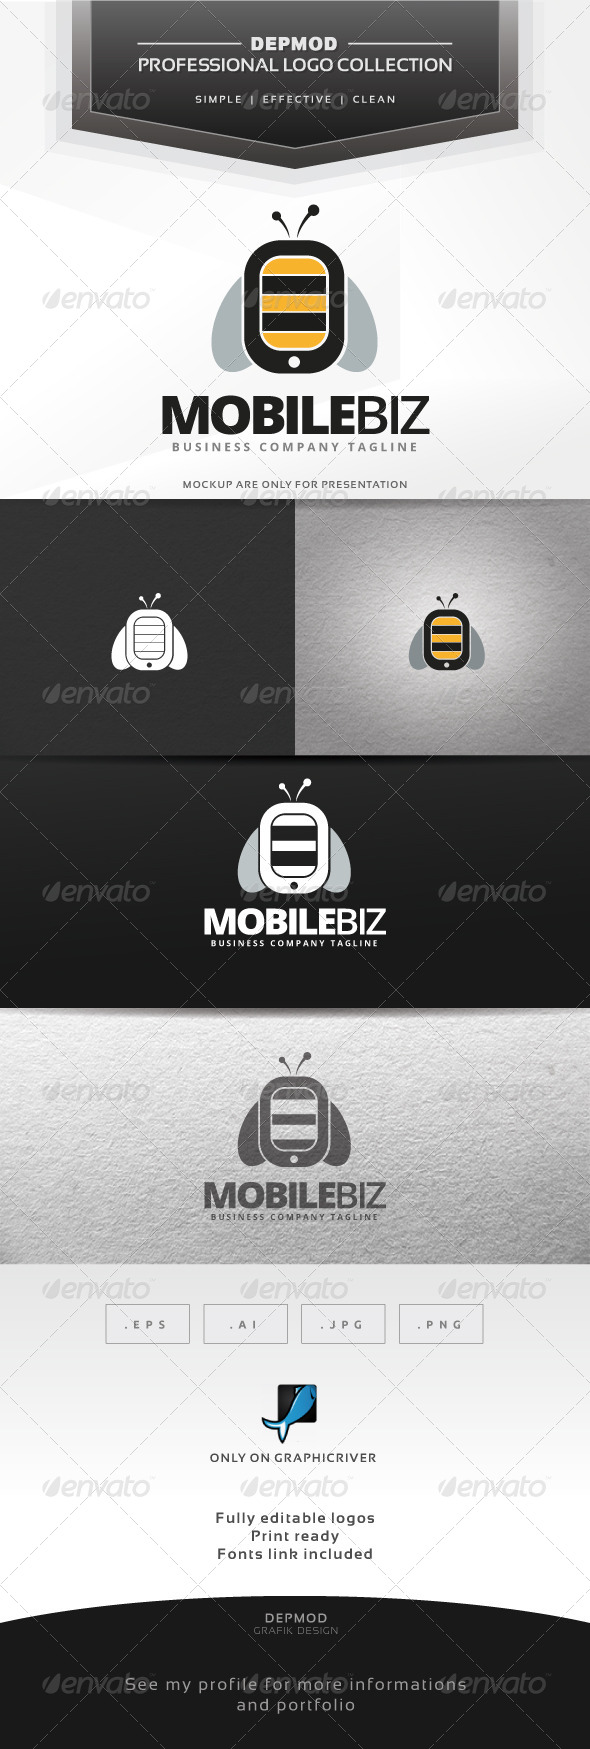 GraphicRiver Mobile Biz Logo 6964960